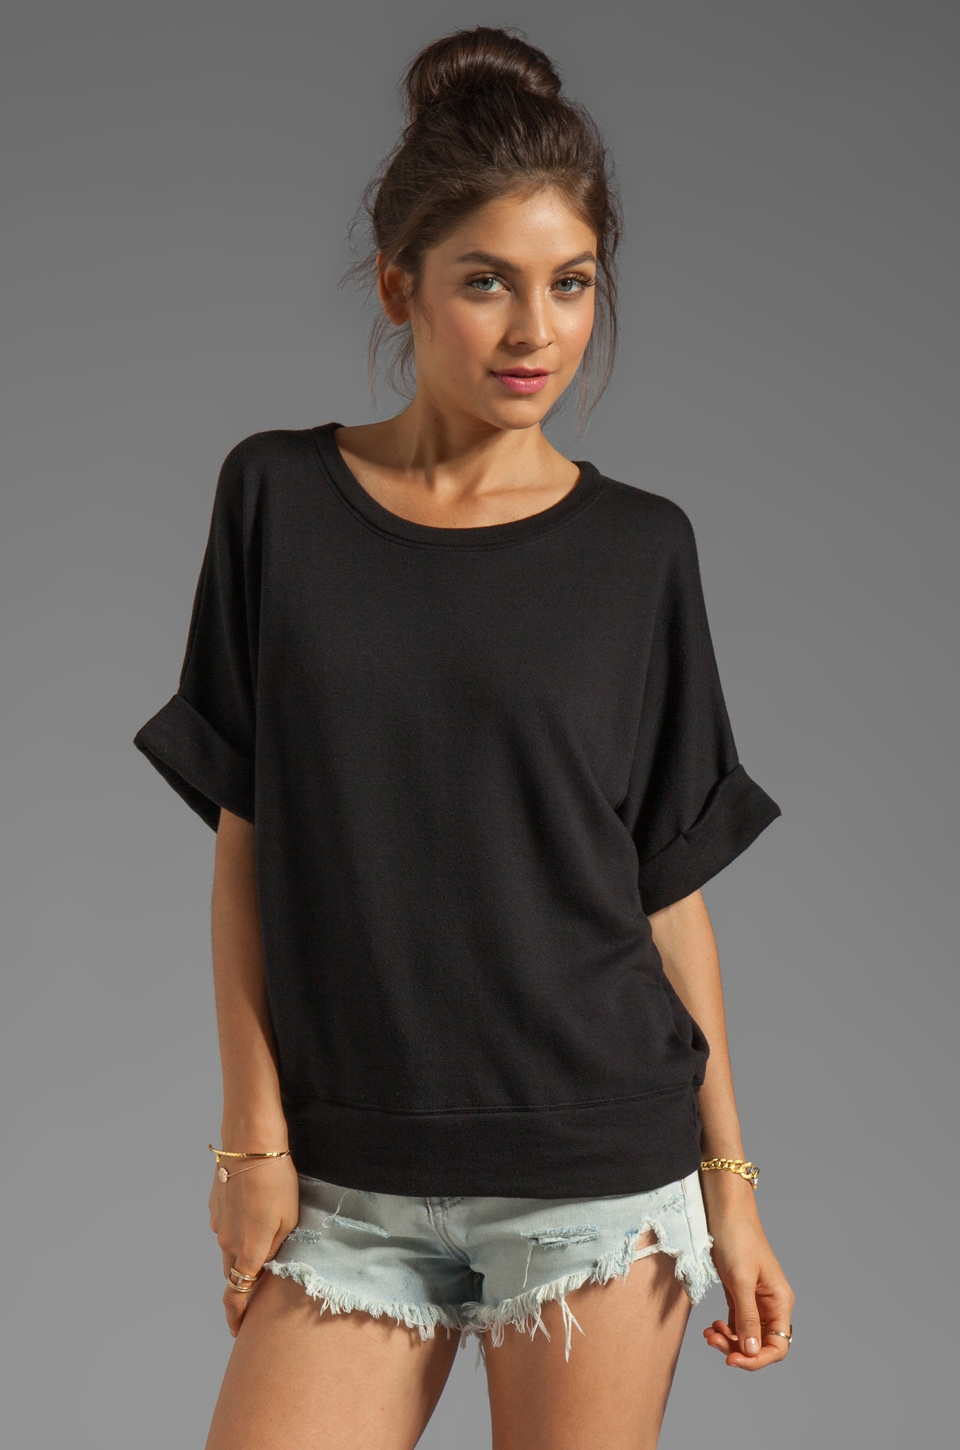 Enza Costa Cashmere French Terry Short Sleeve Sweatshirt in Black